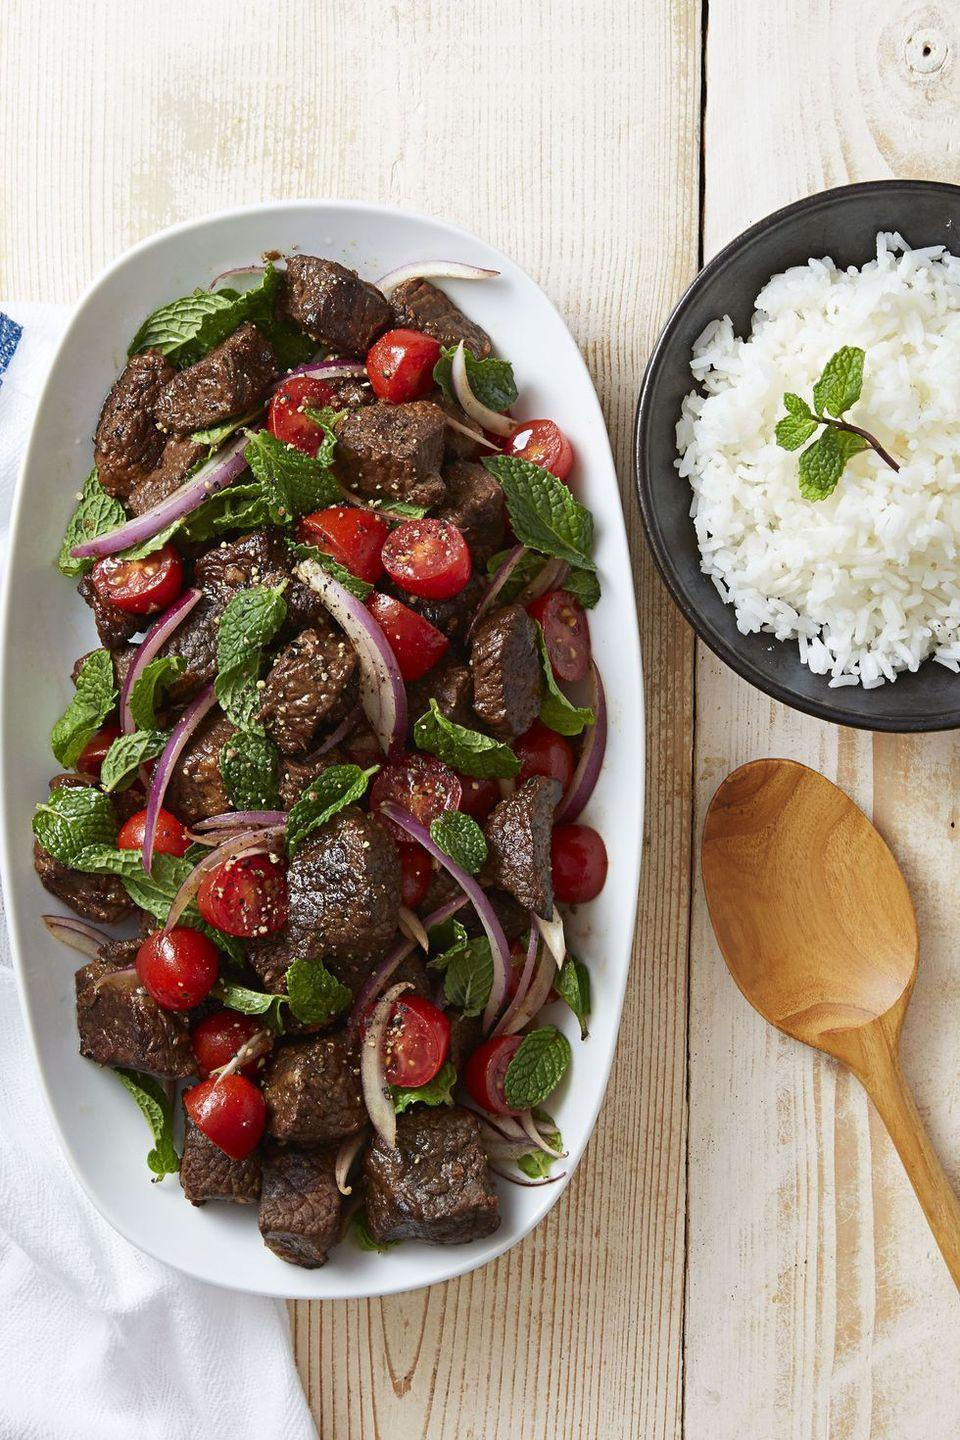 """<p>Trimming the fat off a lean beef brisket makes this flavorful cut so much better for your waistline. Paired with zesty onions and fresh tomatoes, this slow-roasted beef dinner contains a mere 290 calories.<br></p><p><a href=""""https://www.goodhousekeeping.com/food-recipes/a37553/soy-braised-beef-tomato-mint-salad-recipe/"""" rel=""""nofollow noopener"""" target=""""_blank"""" data-ylk=""""slk:Get the recipe for Soy-Braised Beef & Tomato-Mint Salad »"""" class=""""link rapid-noclick-resp""""><em>Get the recipe for Soy-Braised Beef & Tomato-Mint Salad »</em></a></p>"""